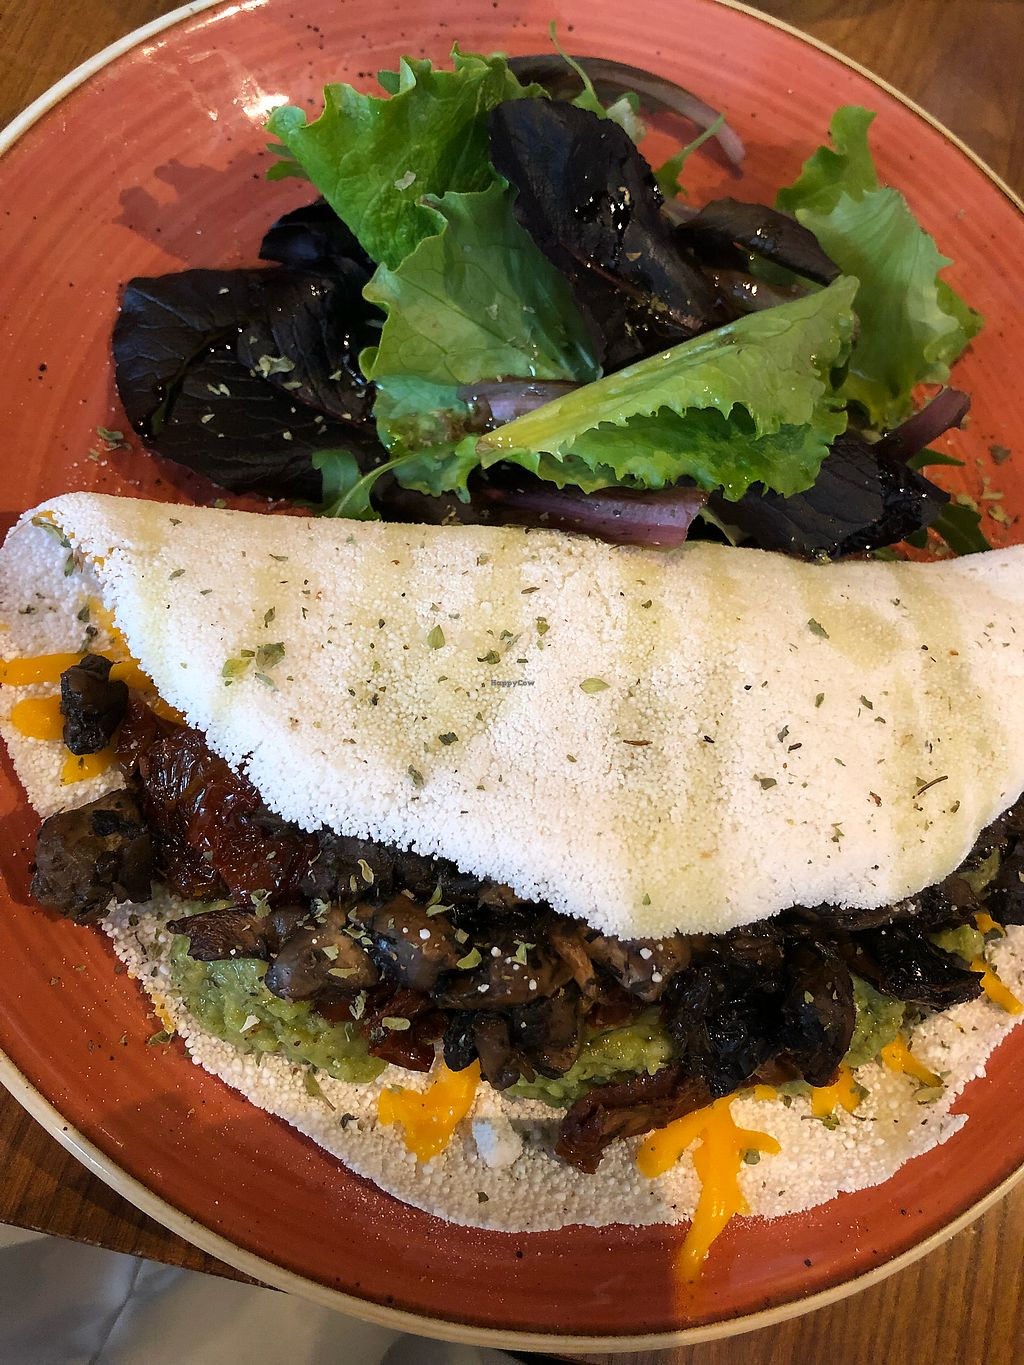 """Photo of Zenith  by <a href=""""/members/profile/Rudgetts"""">Rudgetts</a> <br/>Gluten free began pancake with avocado, mushrooms, sundries tomatoes and vegan cheese <br/> March 3, 2018  - <a href='/contact/abuse/image/98408/366143'>Report</a>"""